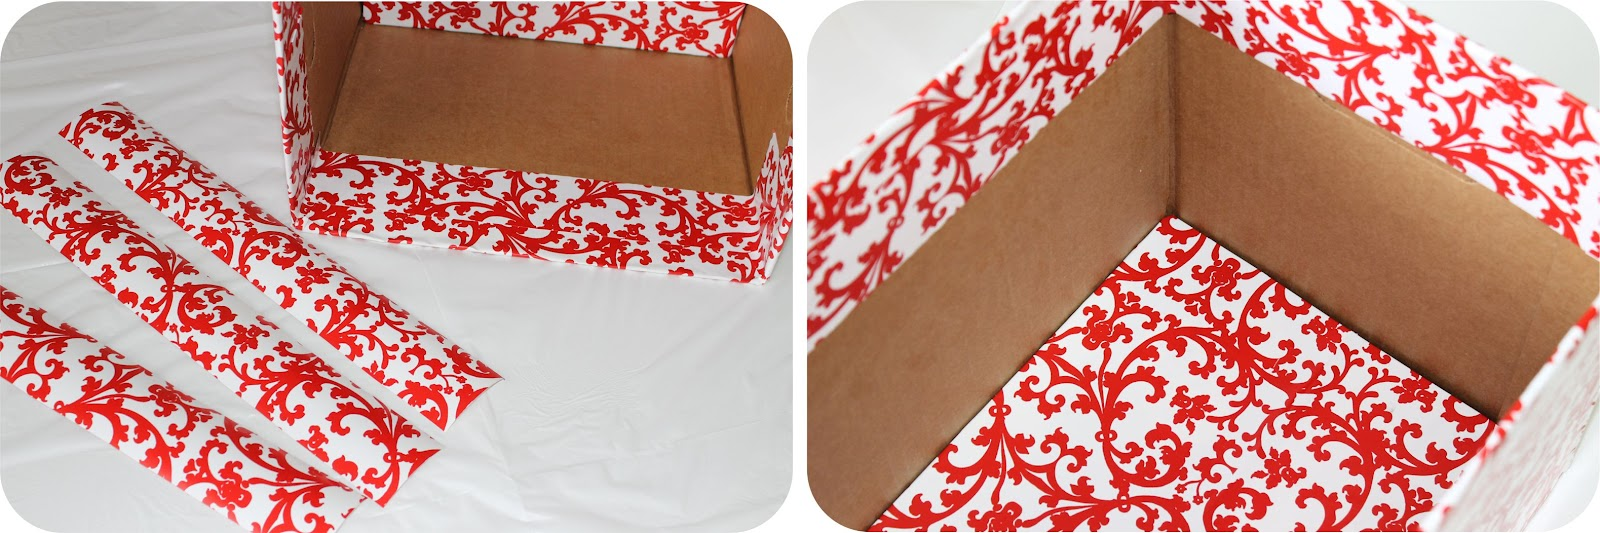 Extra large cardboard storage boxes -  Diy How To Recycle Cardboard Boxes Into Pretty Storage Boxes With Editable Labels